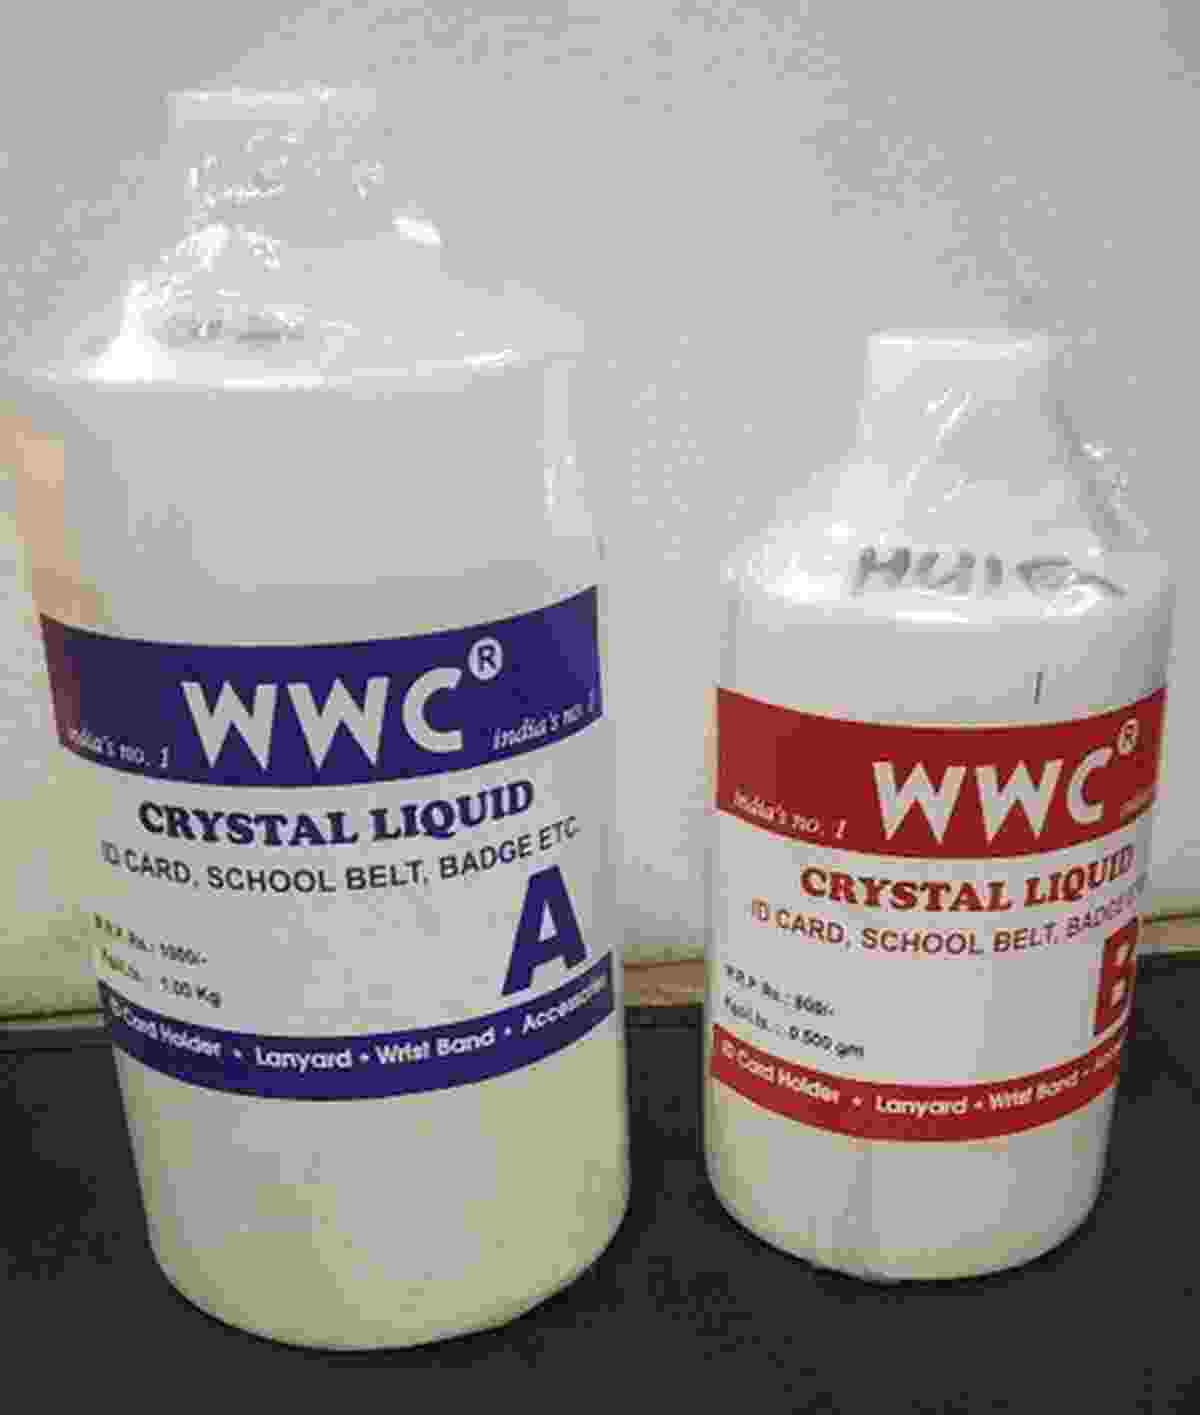 WWC Crystal iCard School Belt & Badges Lamination Chemical Liquid